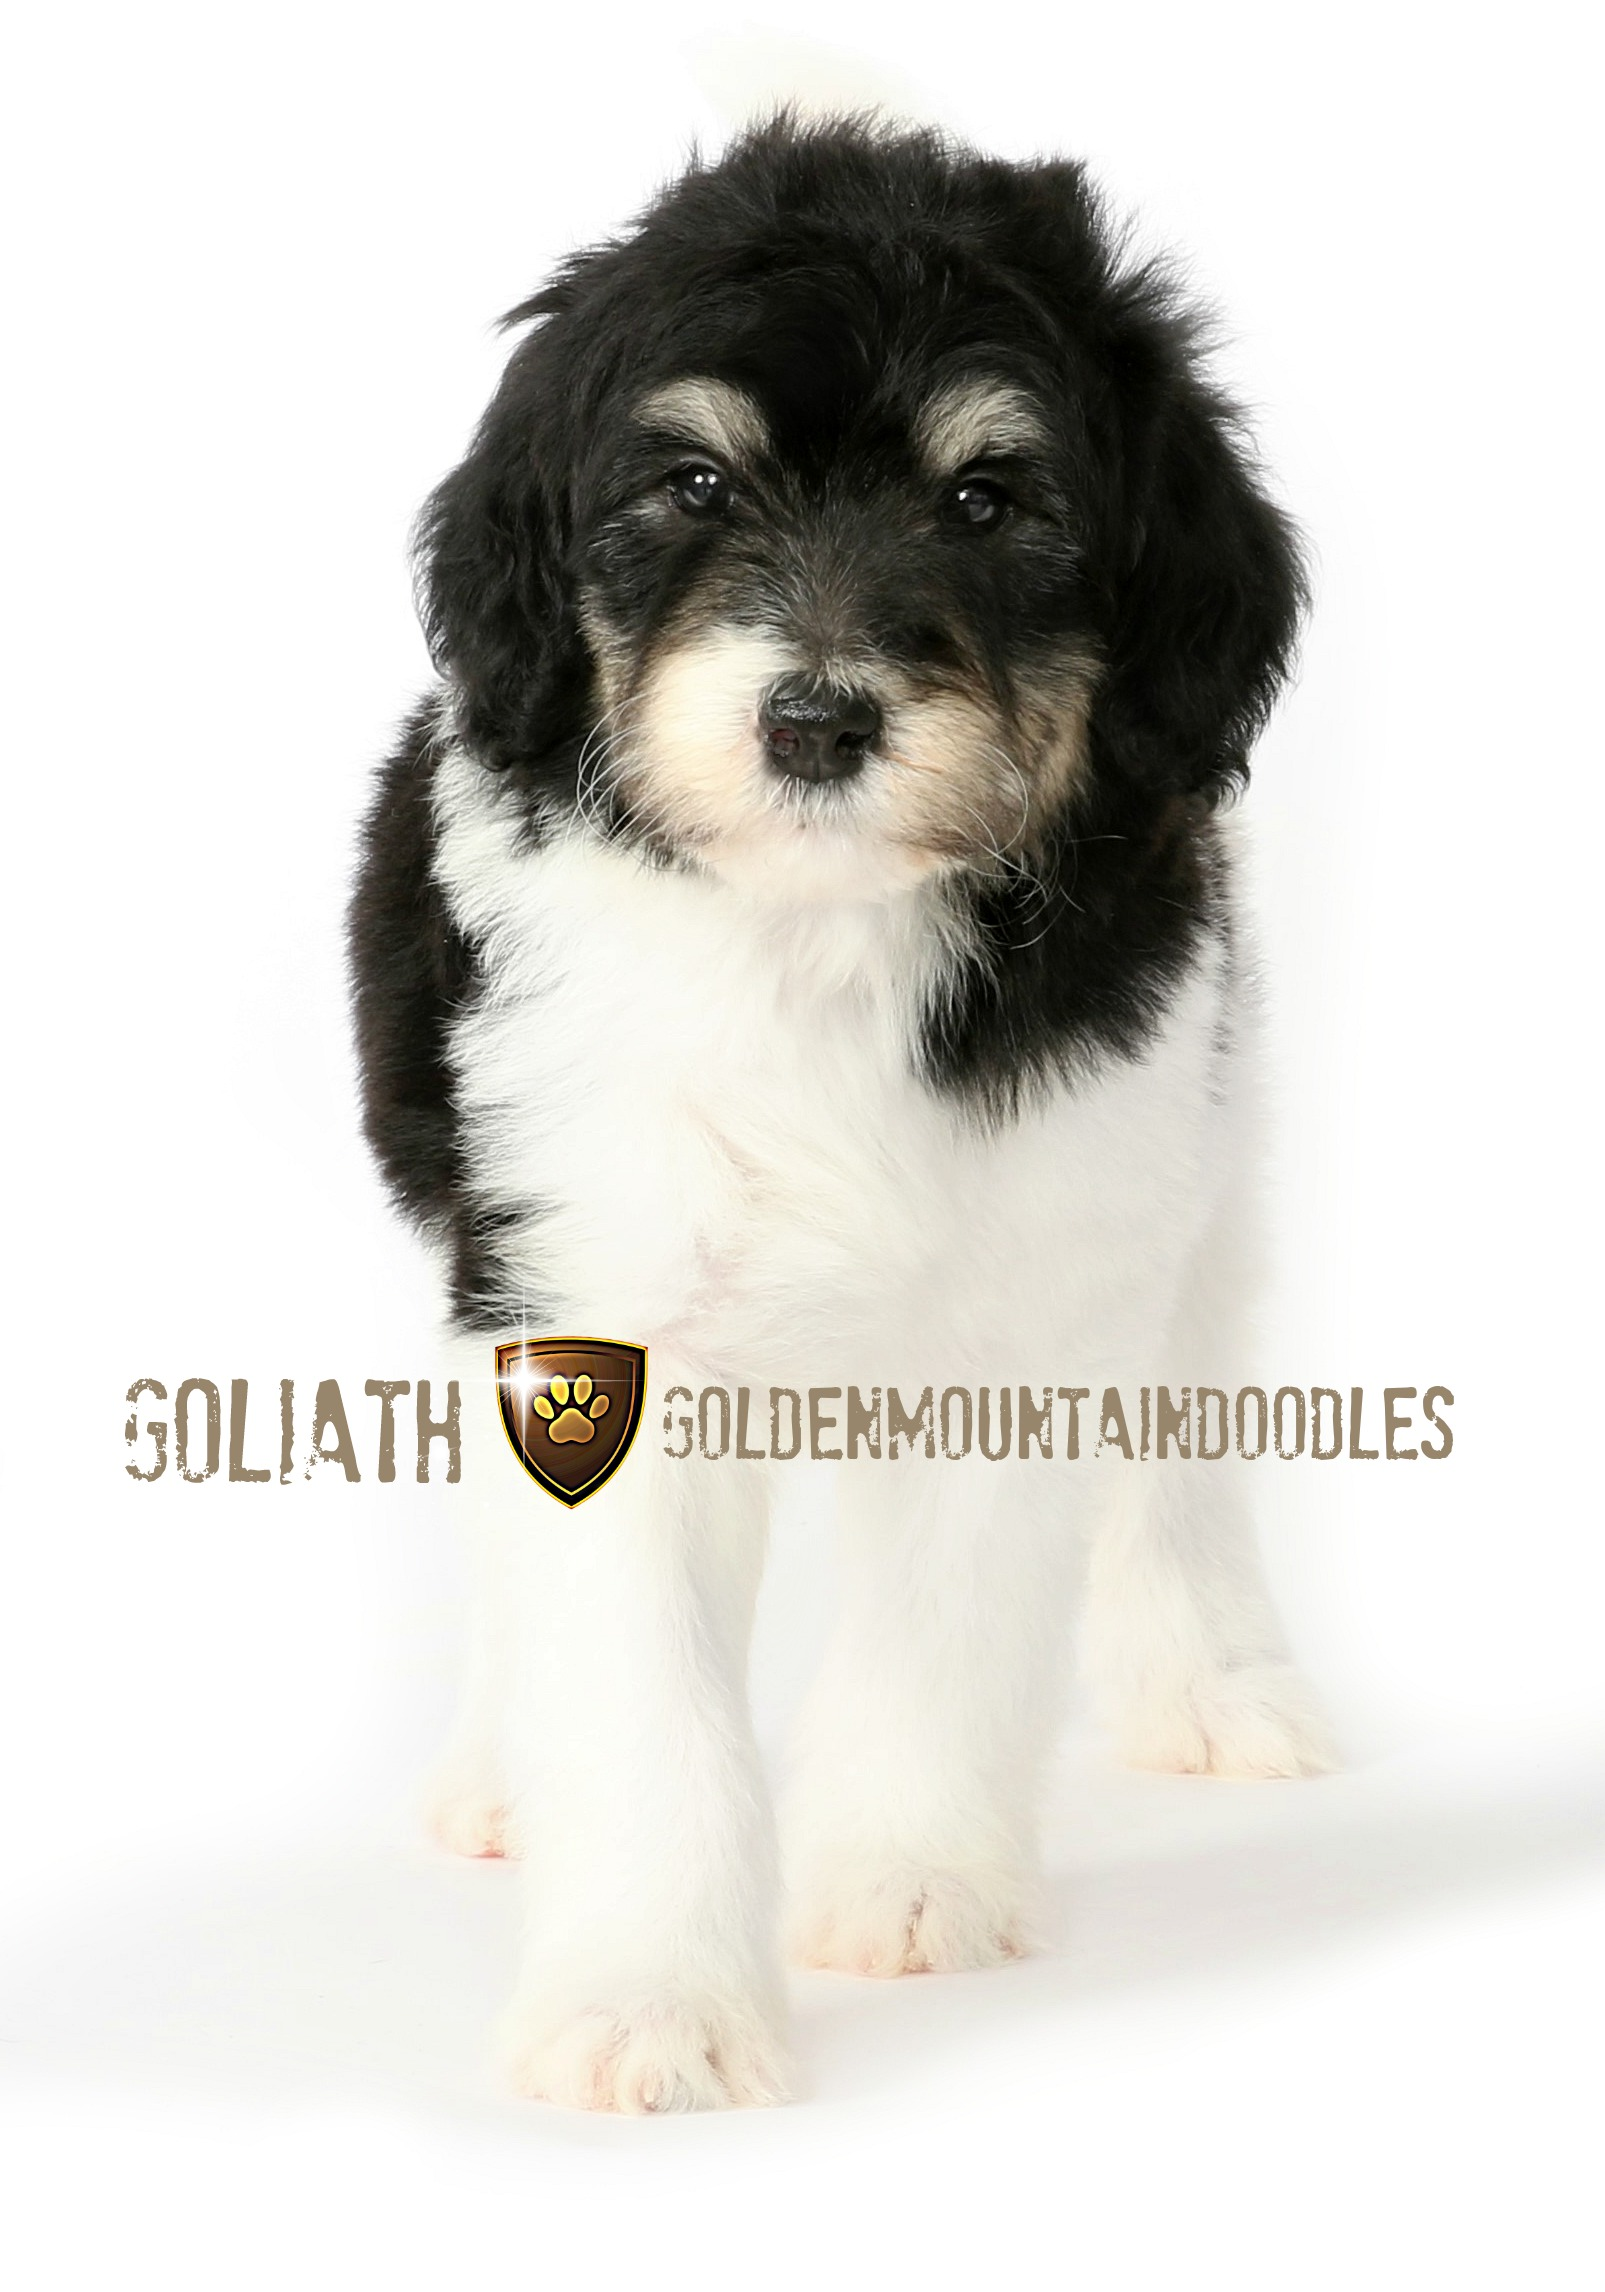 Goliathdoodles.com Golden Mountain Doodle female